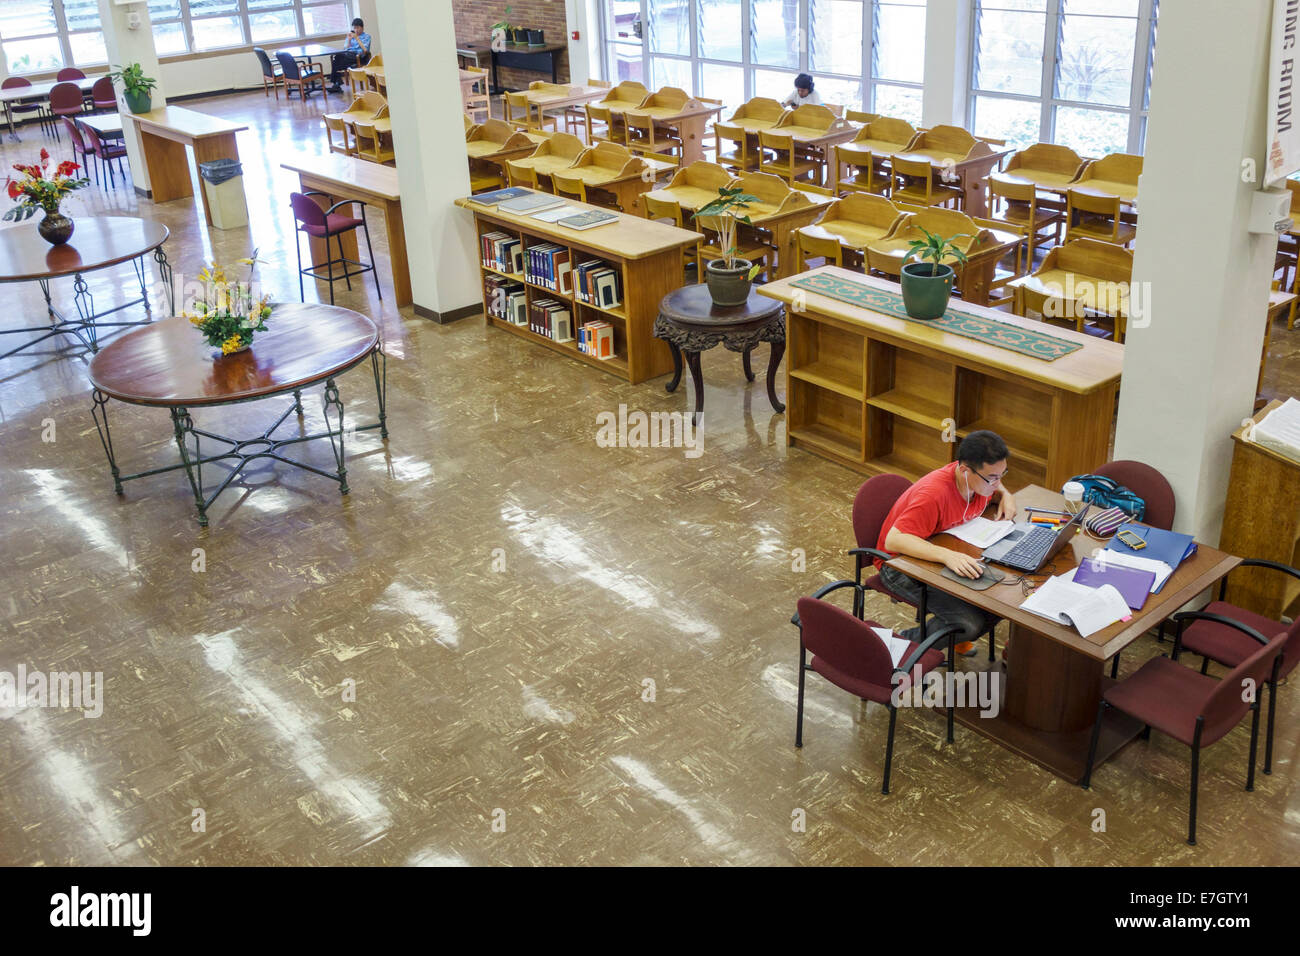 Hawaii Hawaiian Oahu Honolulu University Of Hawaii At Manoa Stock Photo Alamy